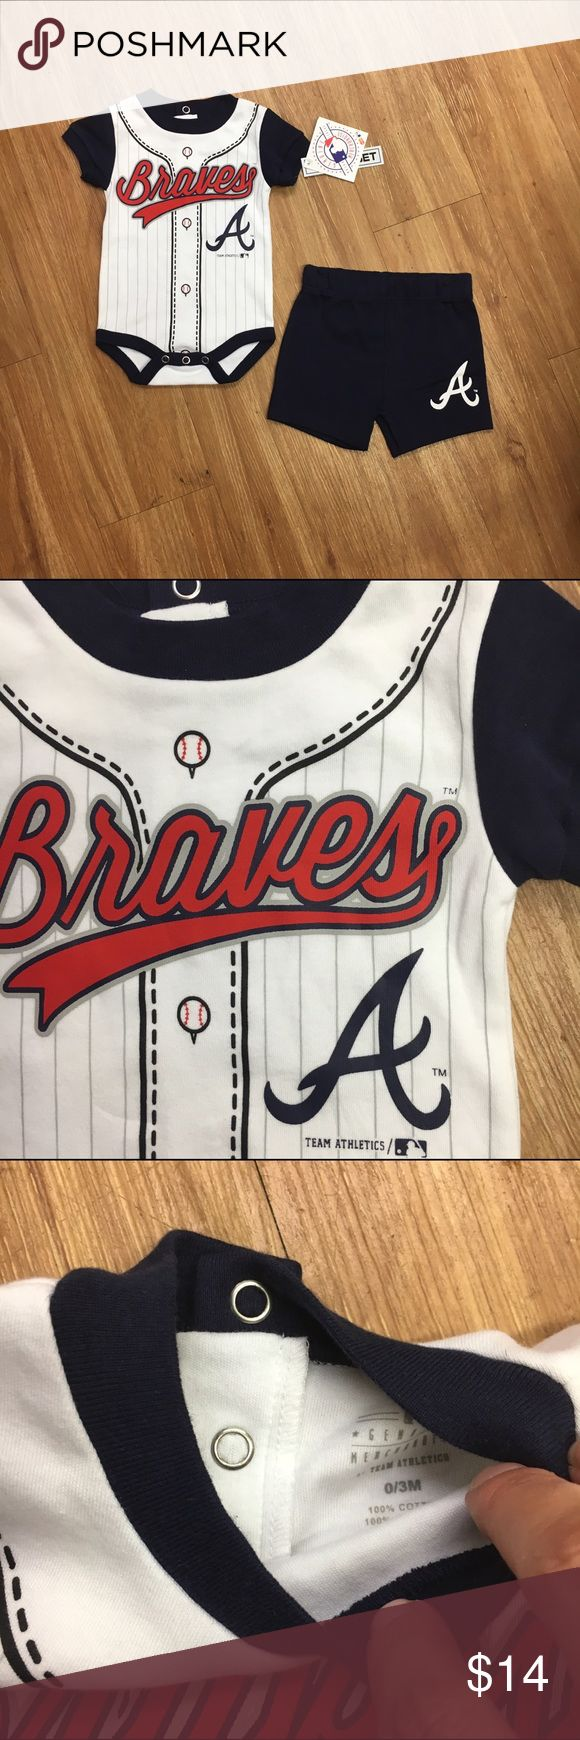 Atlanta Braves Outfit New NWT 3-6 Mo Bodysuit New, with tags.  Two piece Atlanta Braves set by Genuine Merchandise.  Bodysuit and elastic waist shorts.  Appears to run big.  #new #nwt #openingday #baseball #atlanta #atlantabraves #cobbbraves #mlb #boysofsummer Genuine Merchandise Matching Sets